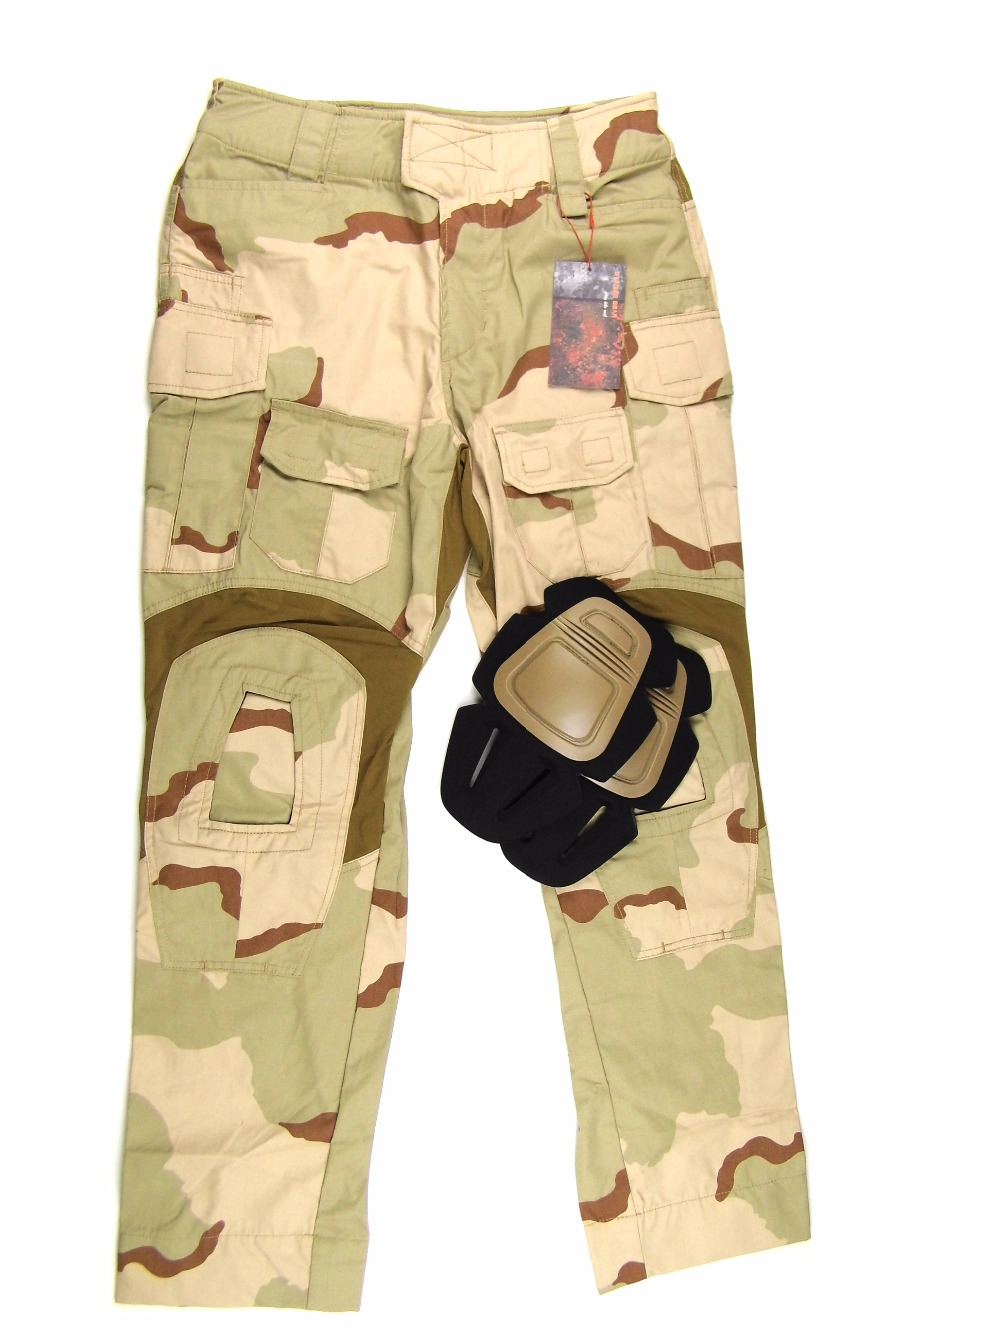 STINGER GEAR DCU G3 Combat Pants NYCO Ripstop Desert Camouflage Trousers+Free shipping(STG050999) g3 combat pants wolf grey 3d urban tactical combat pants teflon coating free shipping stg050796